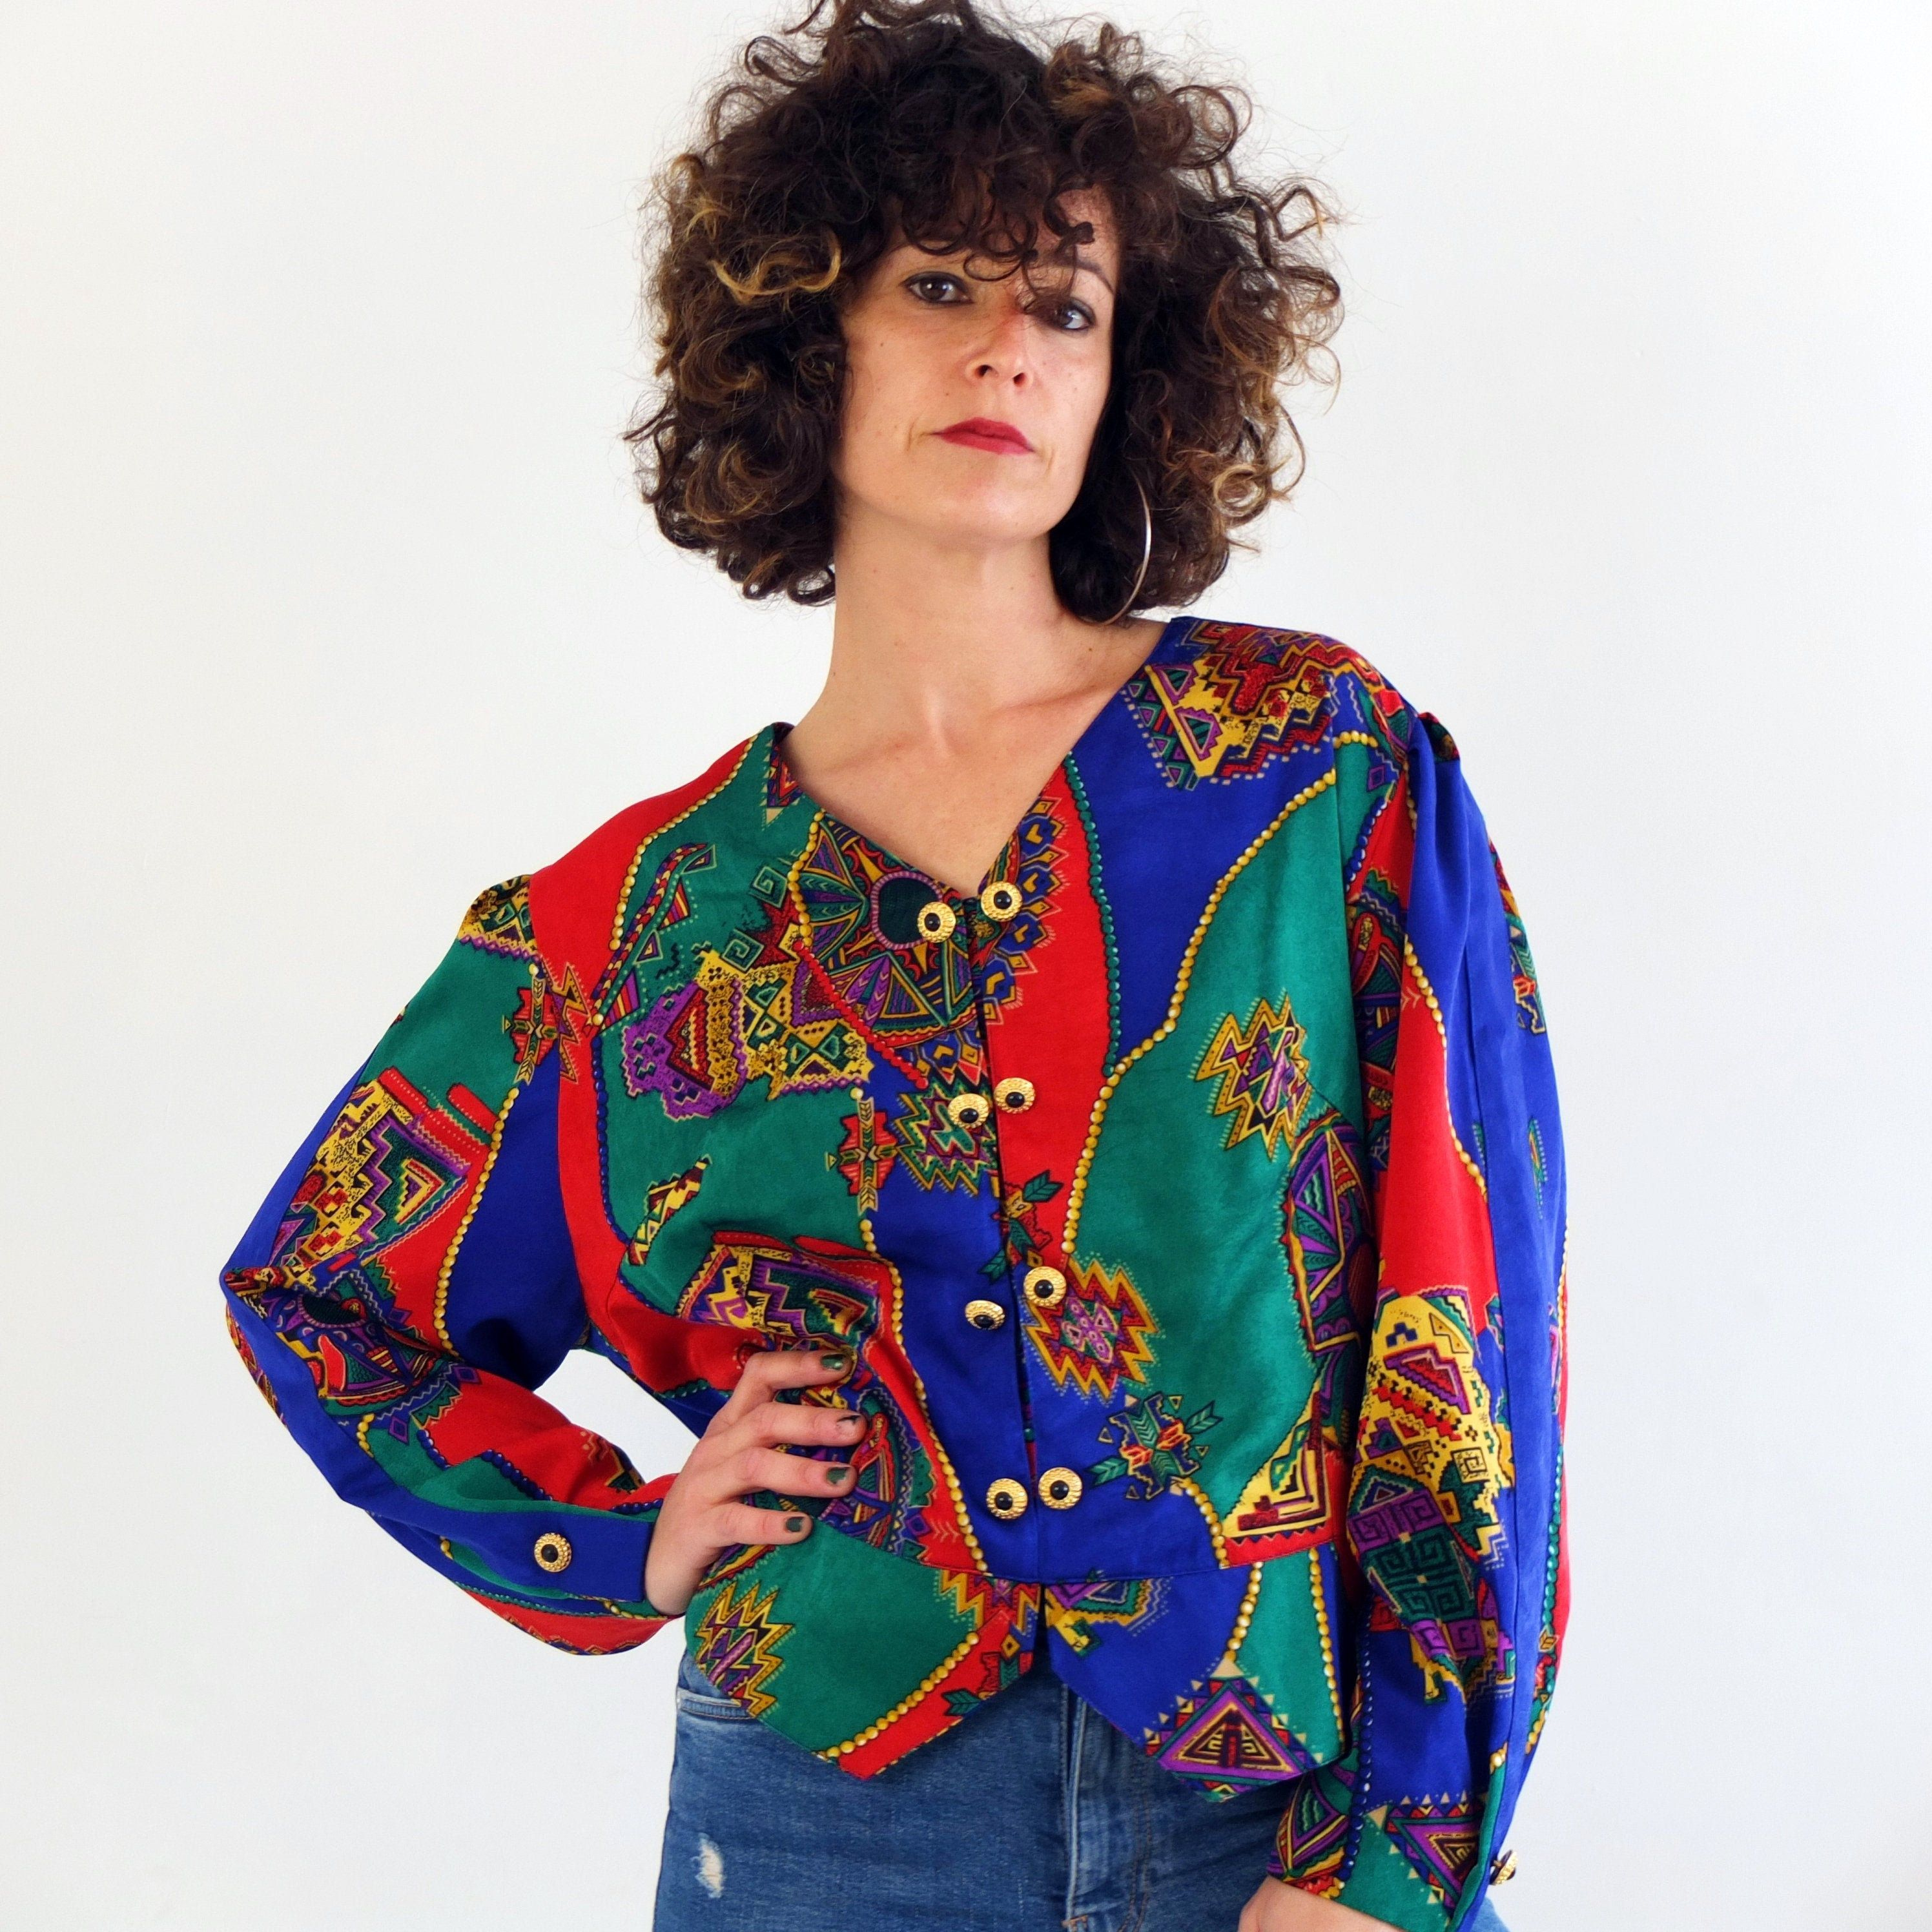 urban hawaiian blue 1980s FLORAL Blouse..size medium womens...floral crop blouse boho mint top colorful hippie summer 80s clothing